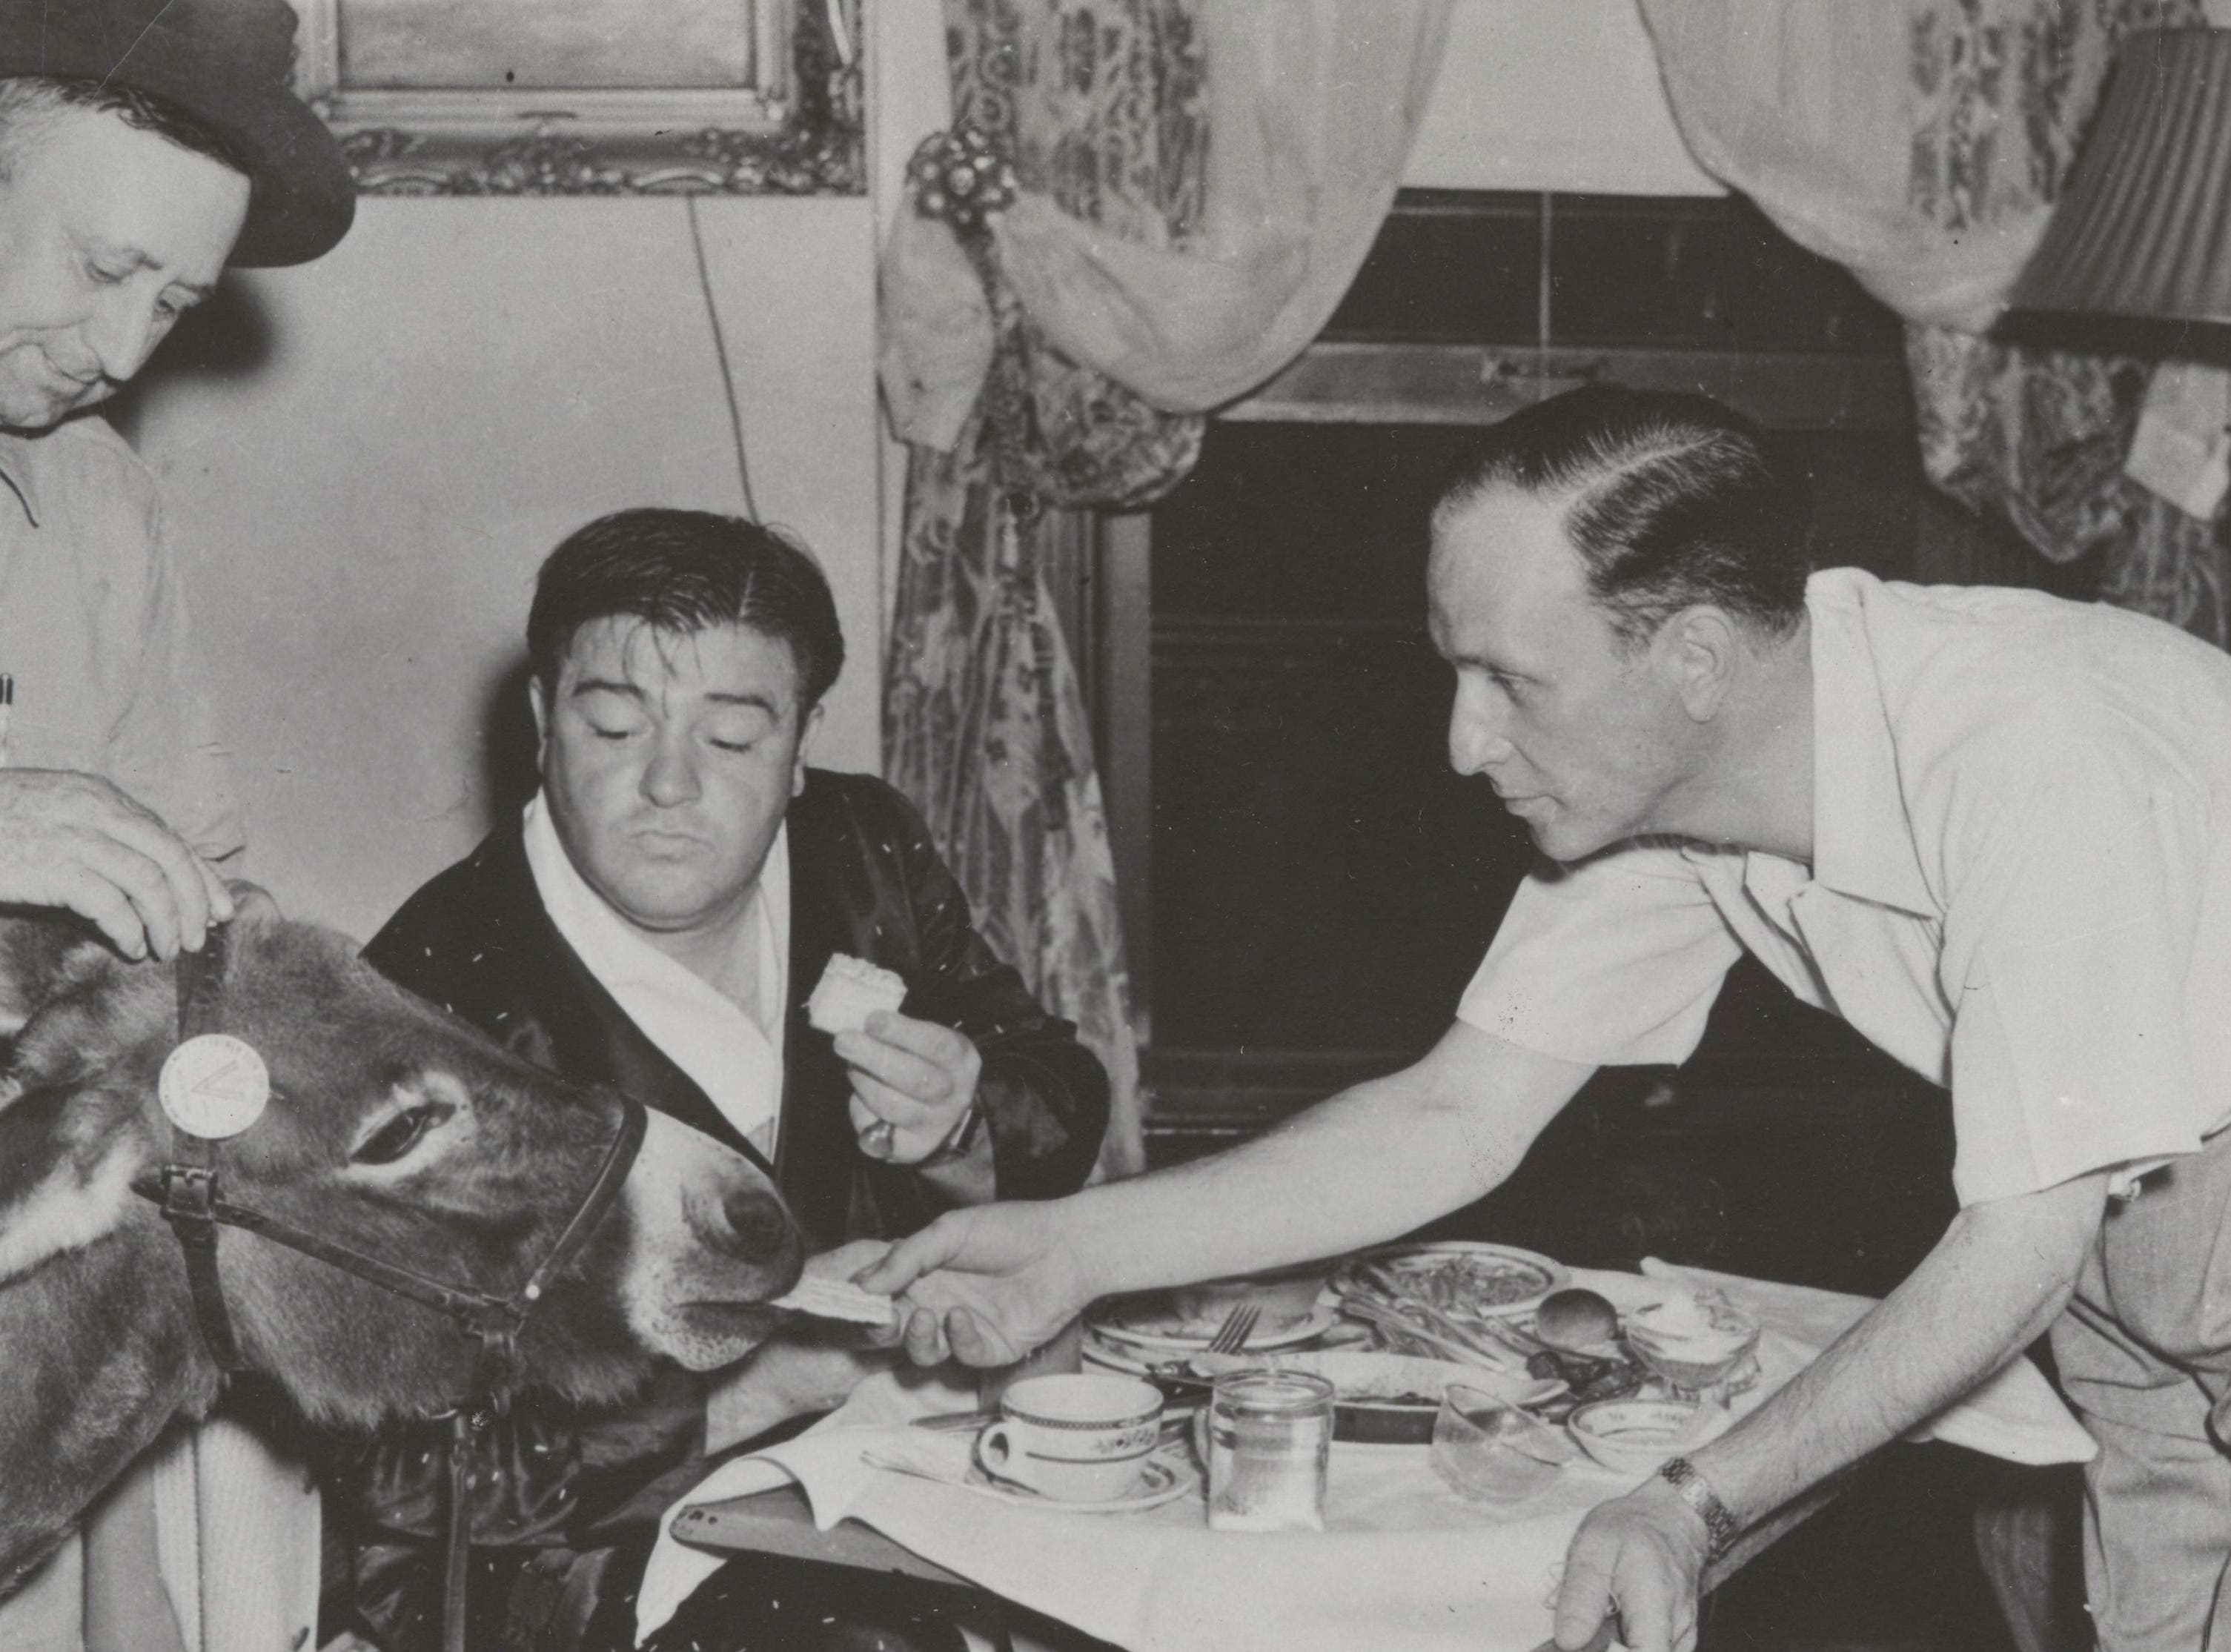 Bud Abbott and Lou Costello were guests at the French Lick Springs Hotel.